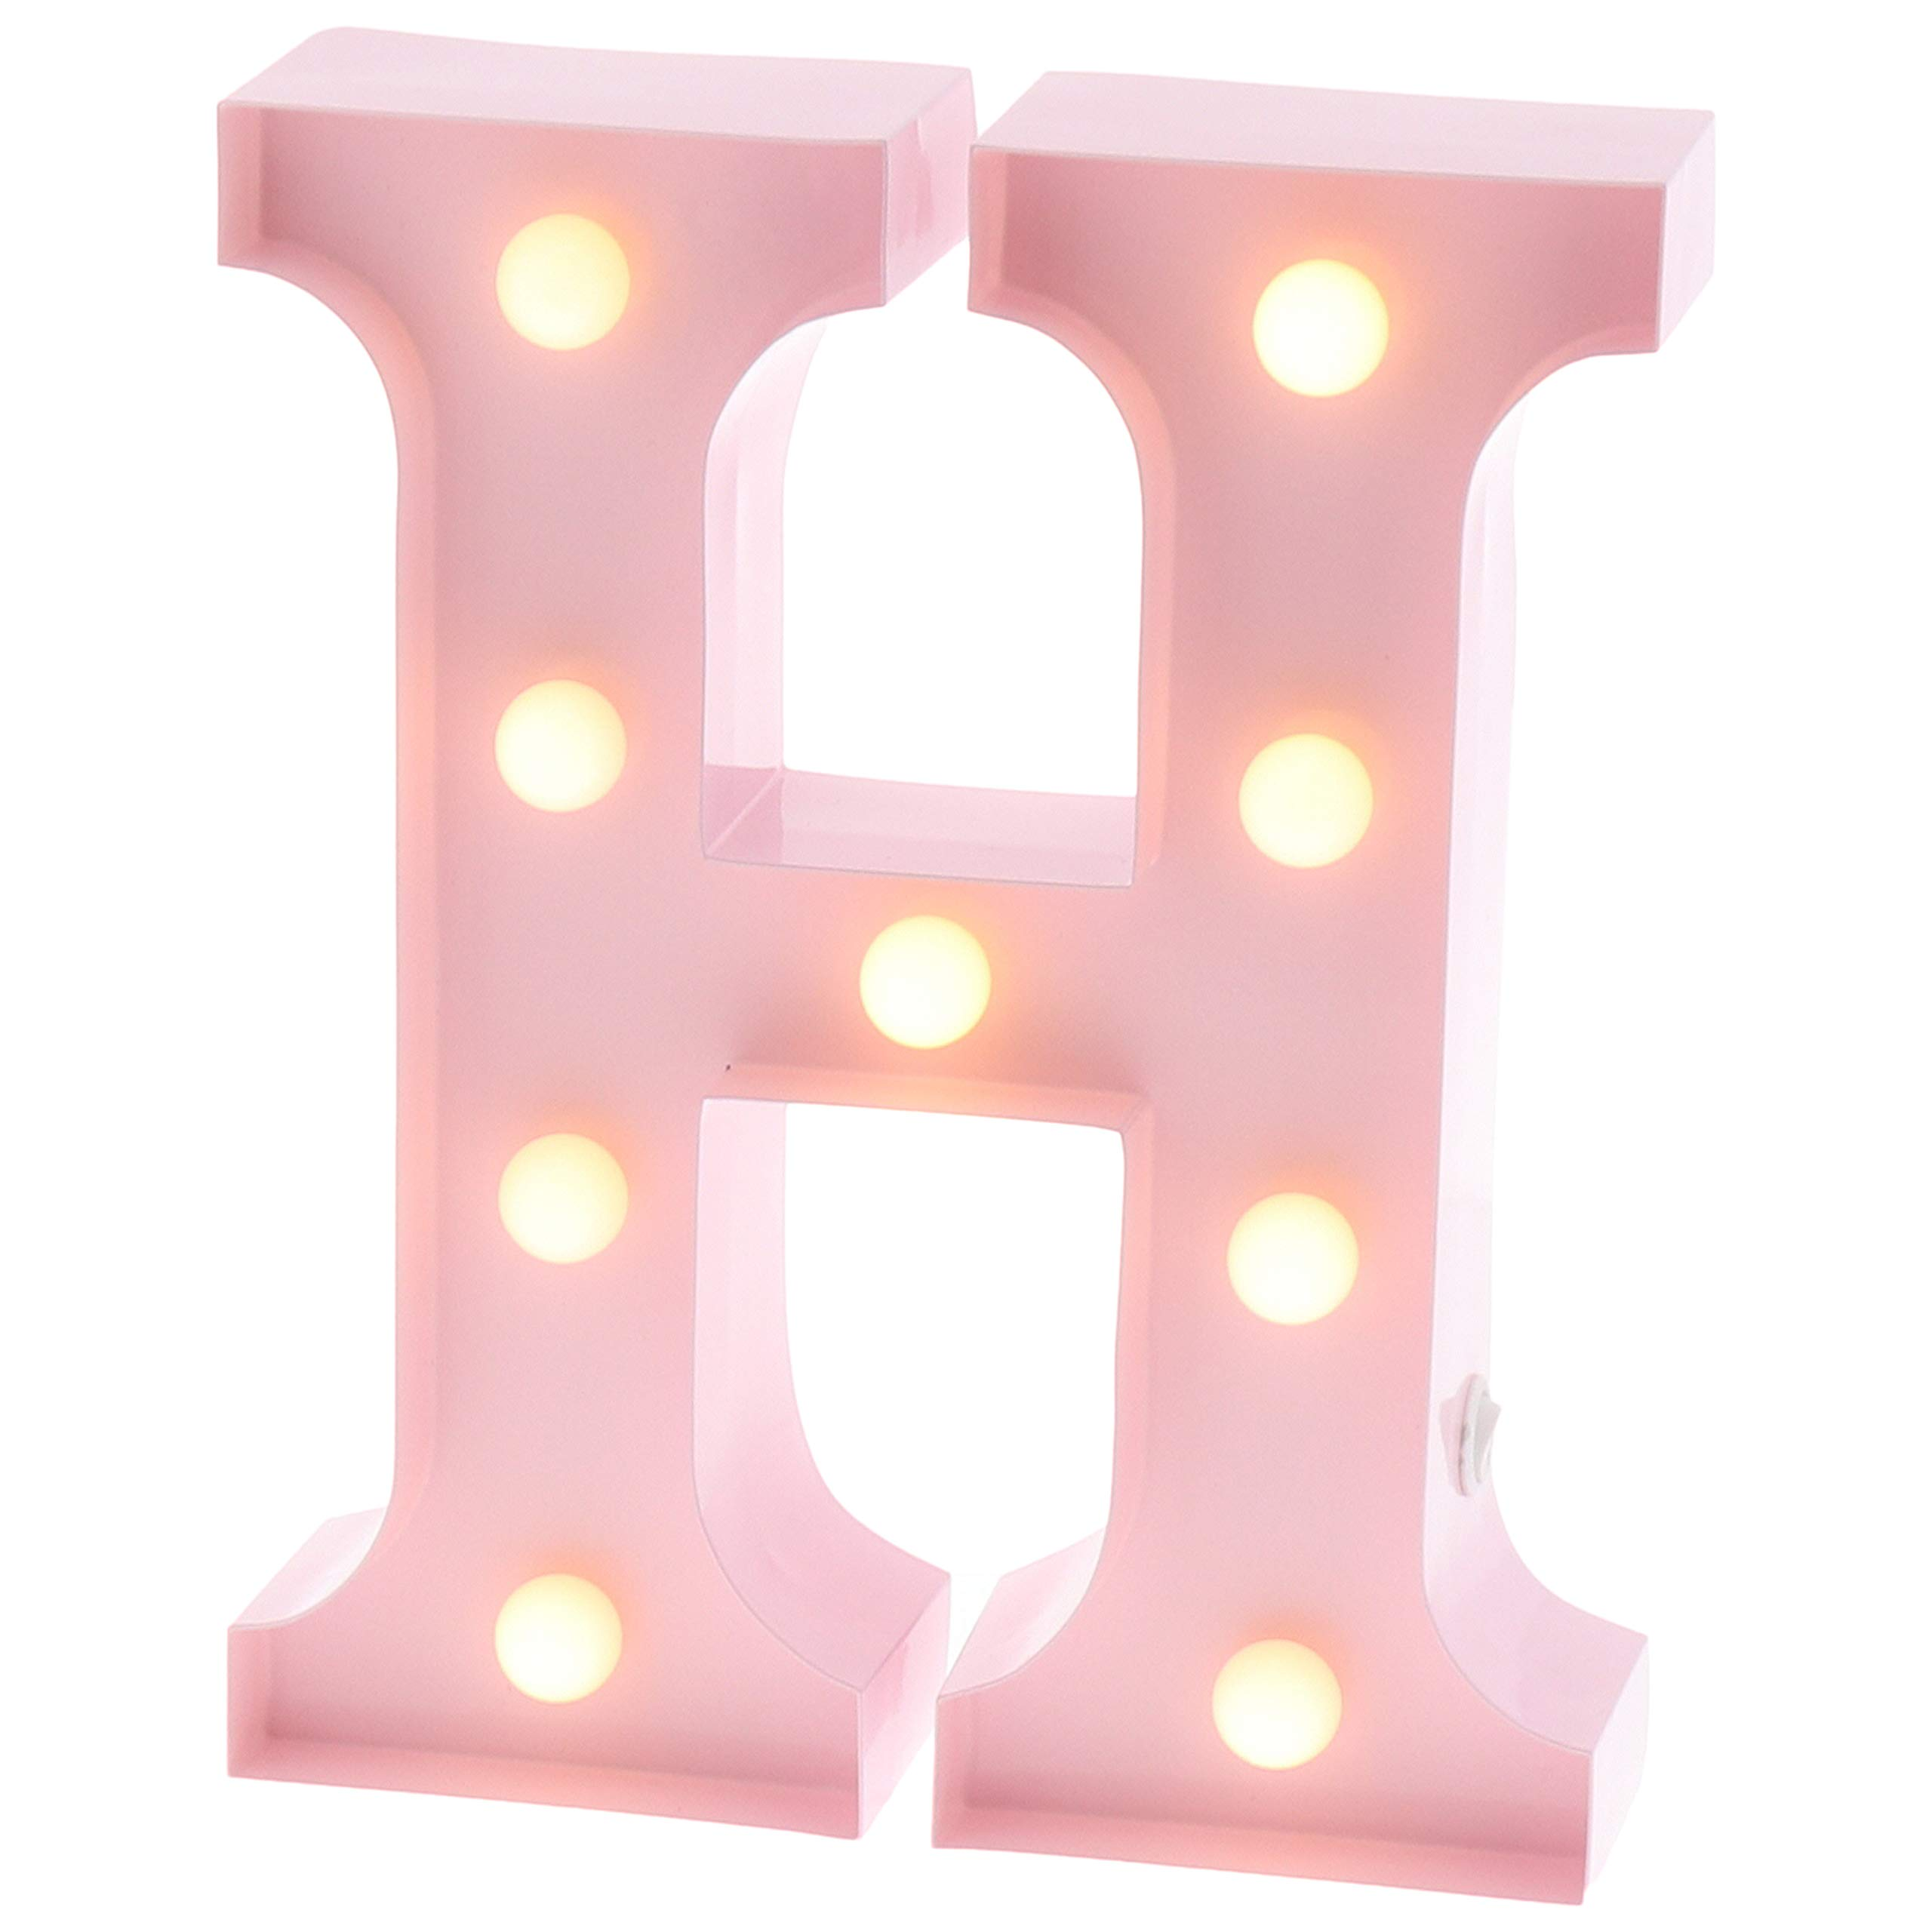 "Barnyard Designs Metal Marquee Letter H Light Up Wall Initial Nursery Letter, Home and Event Decoration 9"" (Baby Pink)"